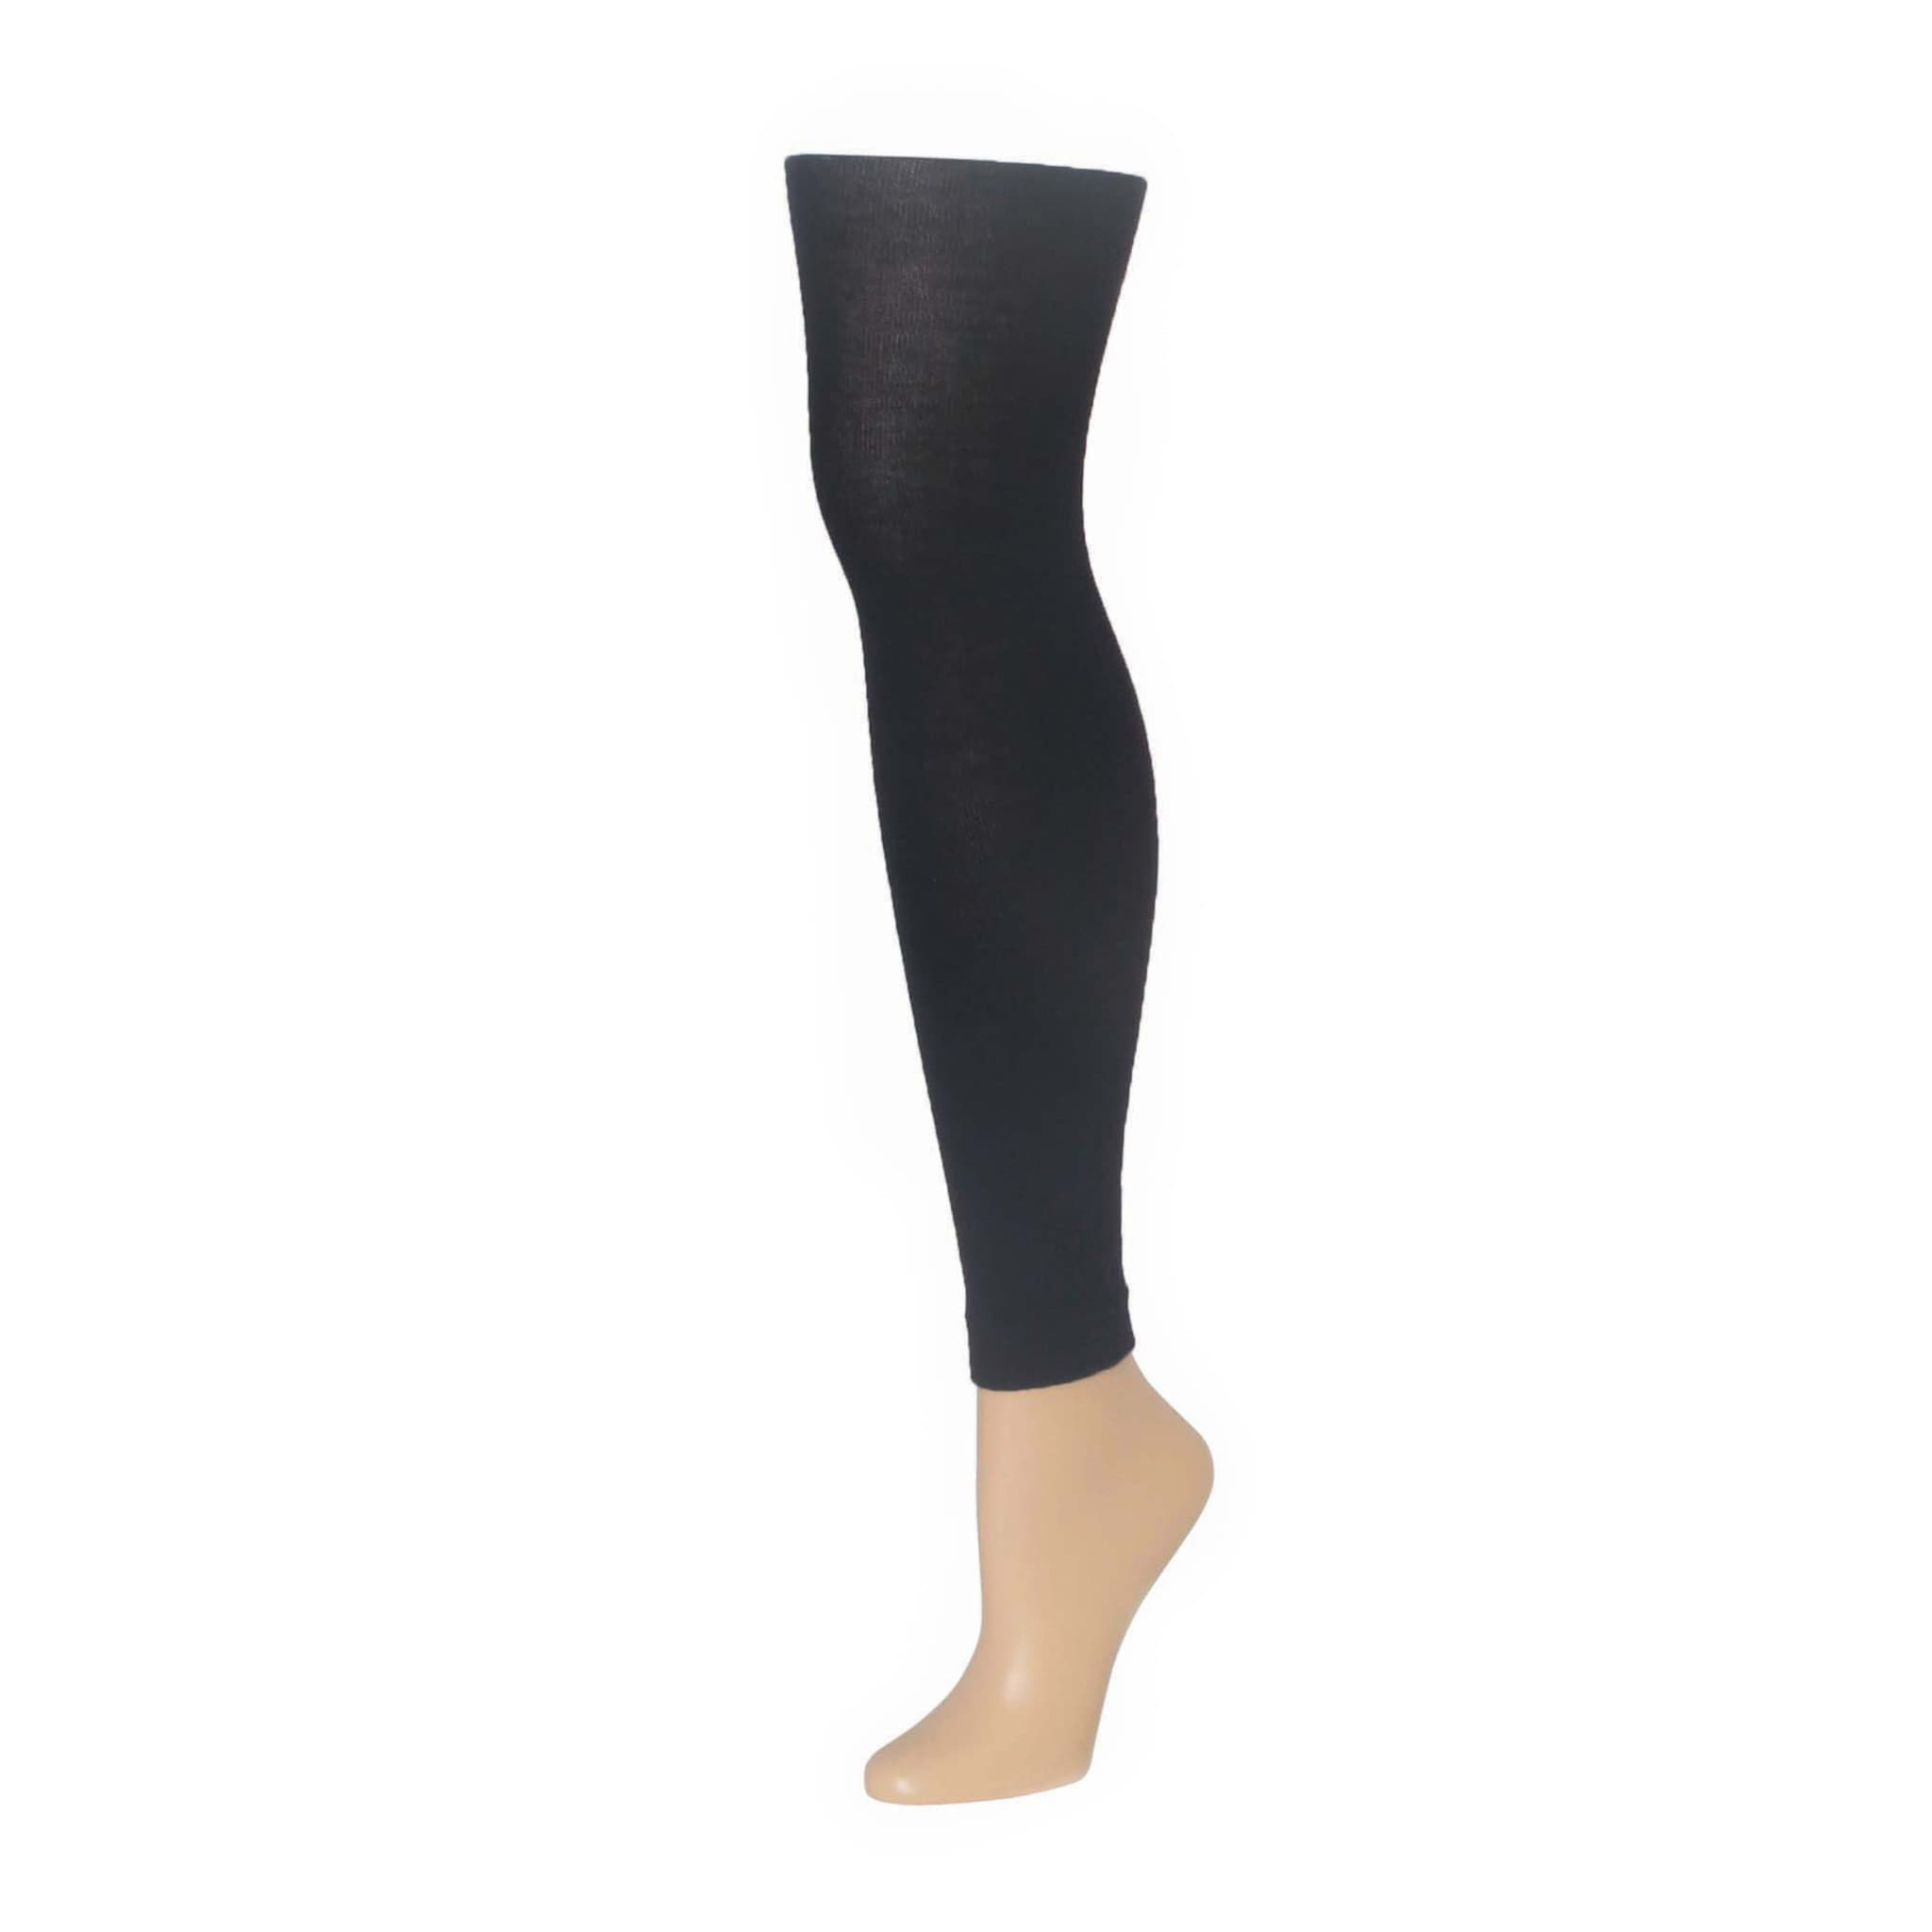 2ad08d293 Shop Memoi Women's Merino Wool/Tencel Footless Tights - Free Shipping On  Orders Over $45 - Overstock - 11143108